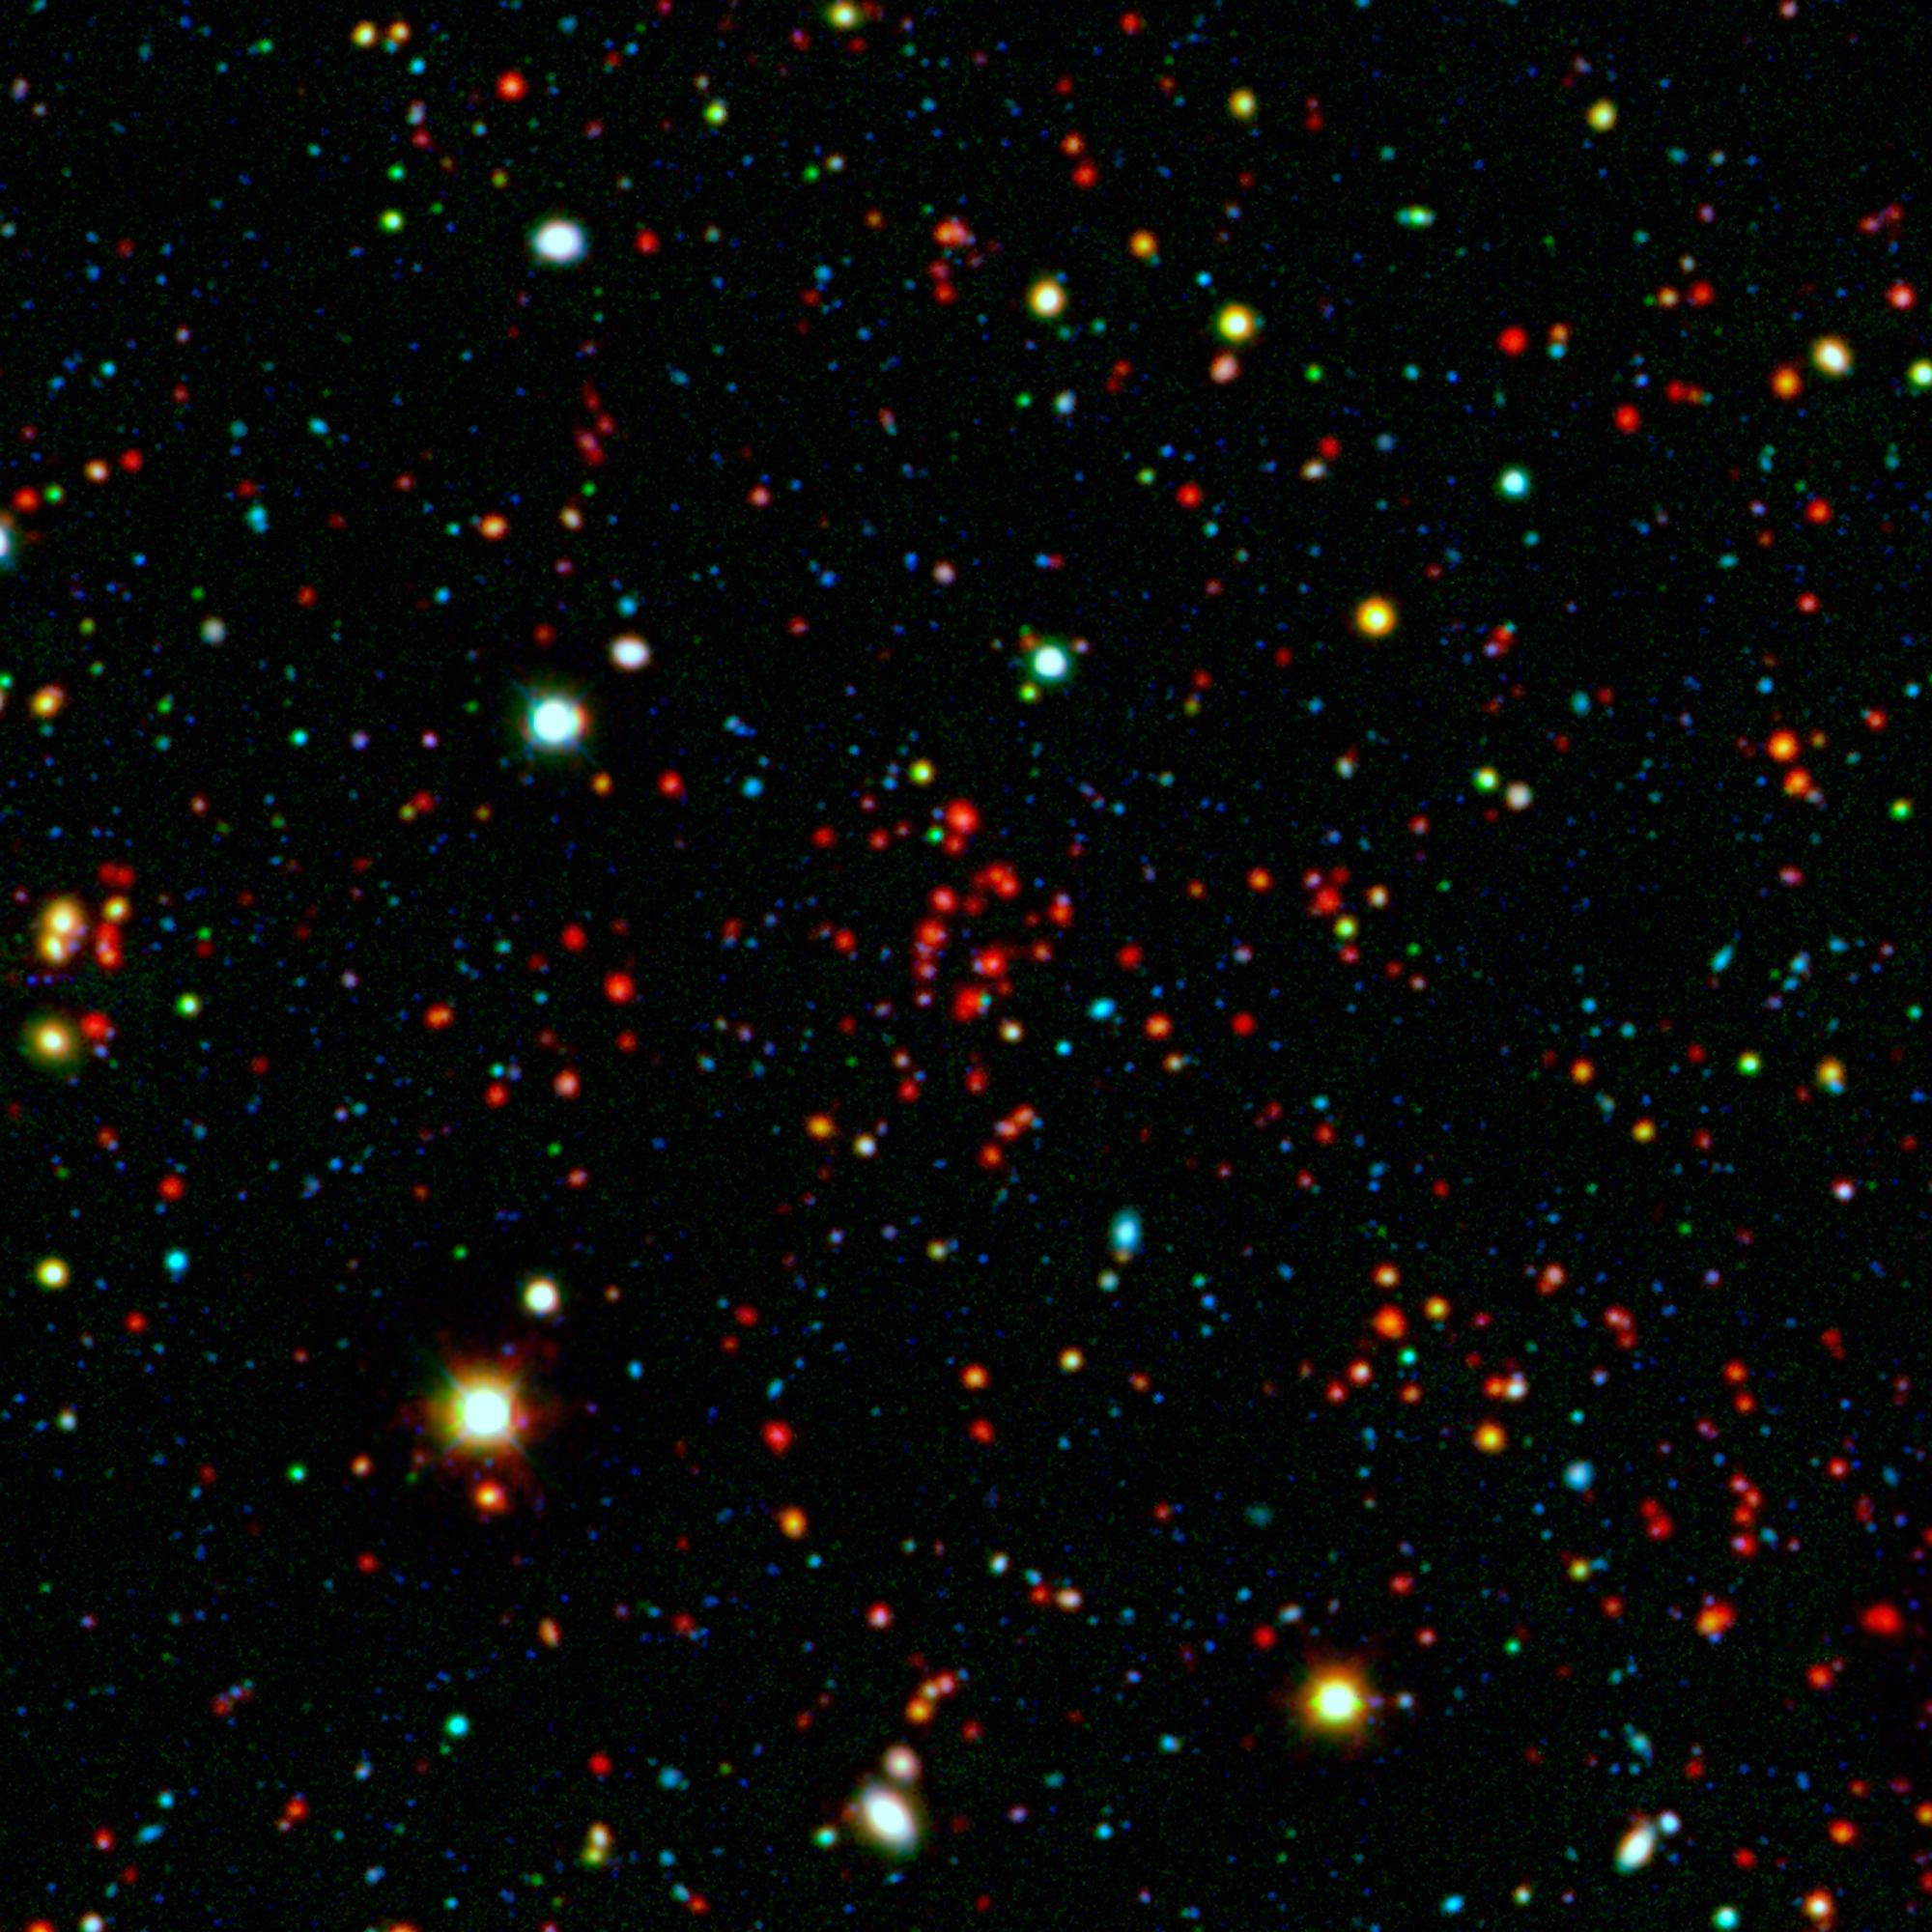 The collection of red dots seen here show one of several very distant galaxy clusters discovered